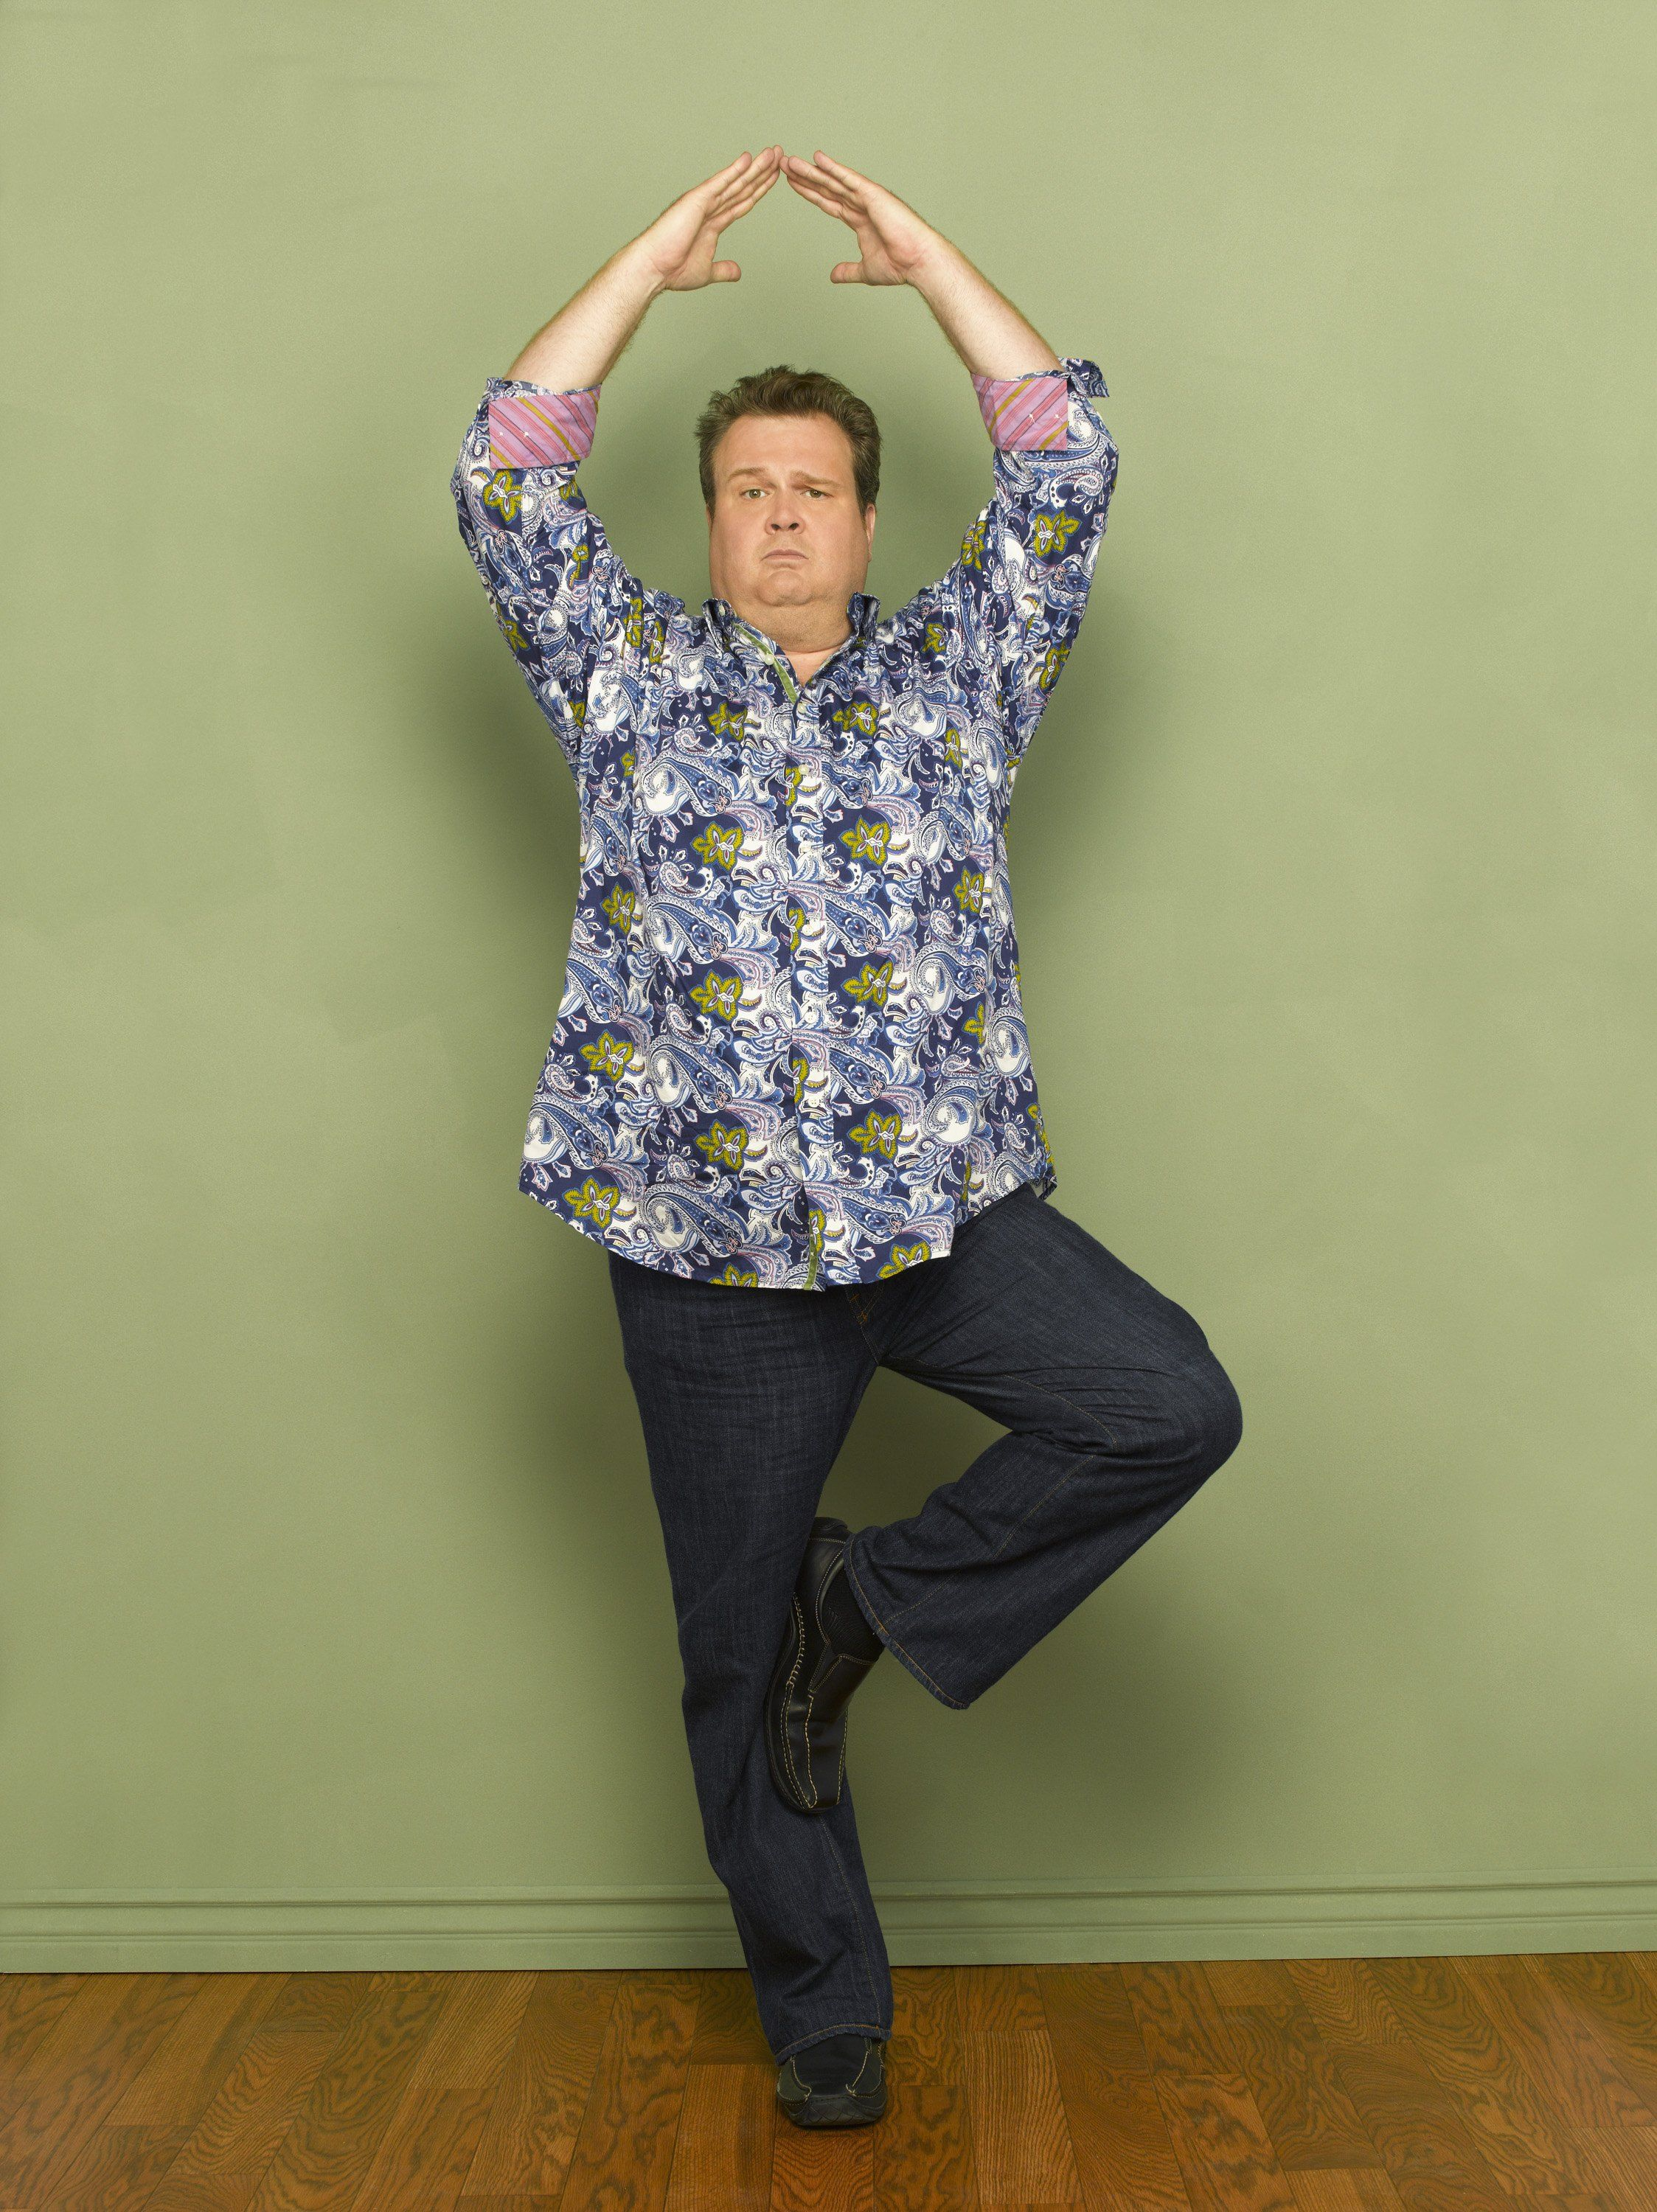 Take A Look At This Photo Of Eric Stonestreet As Cameron Tucker From The ABC Mockumentary Sitcom Modern Family